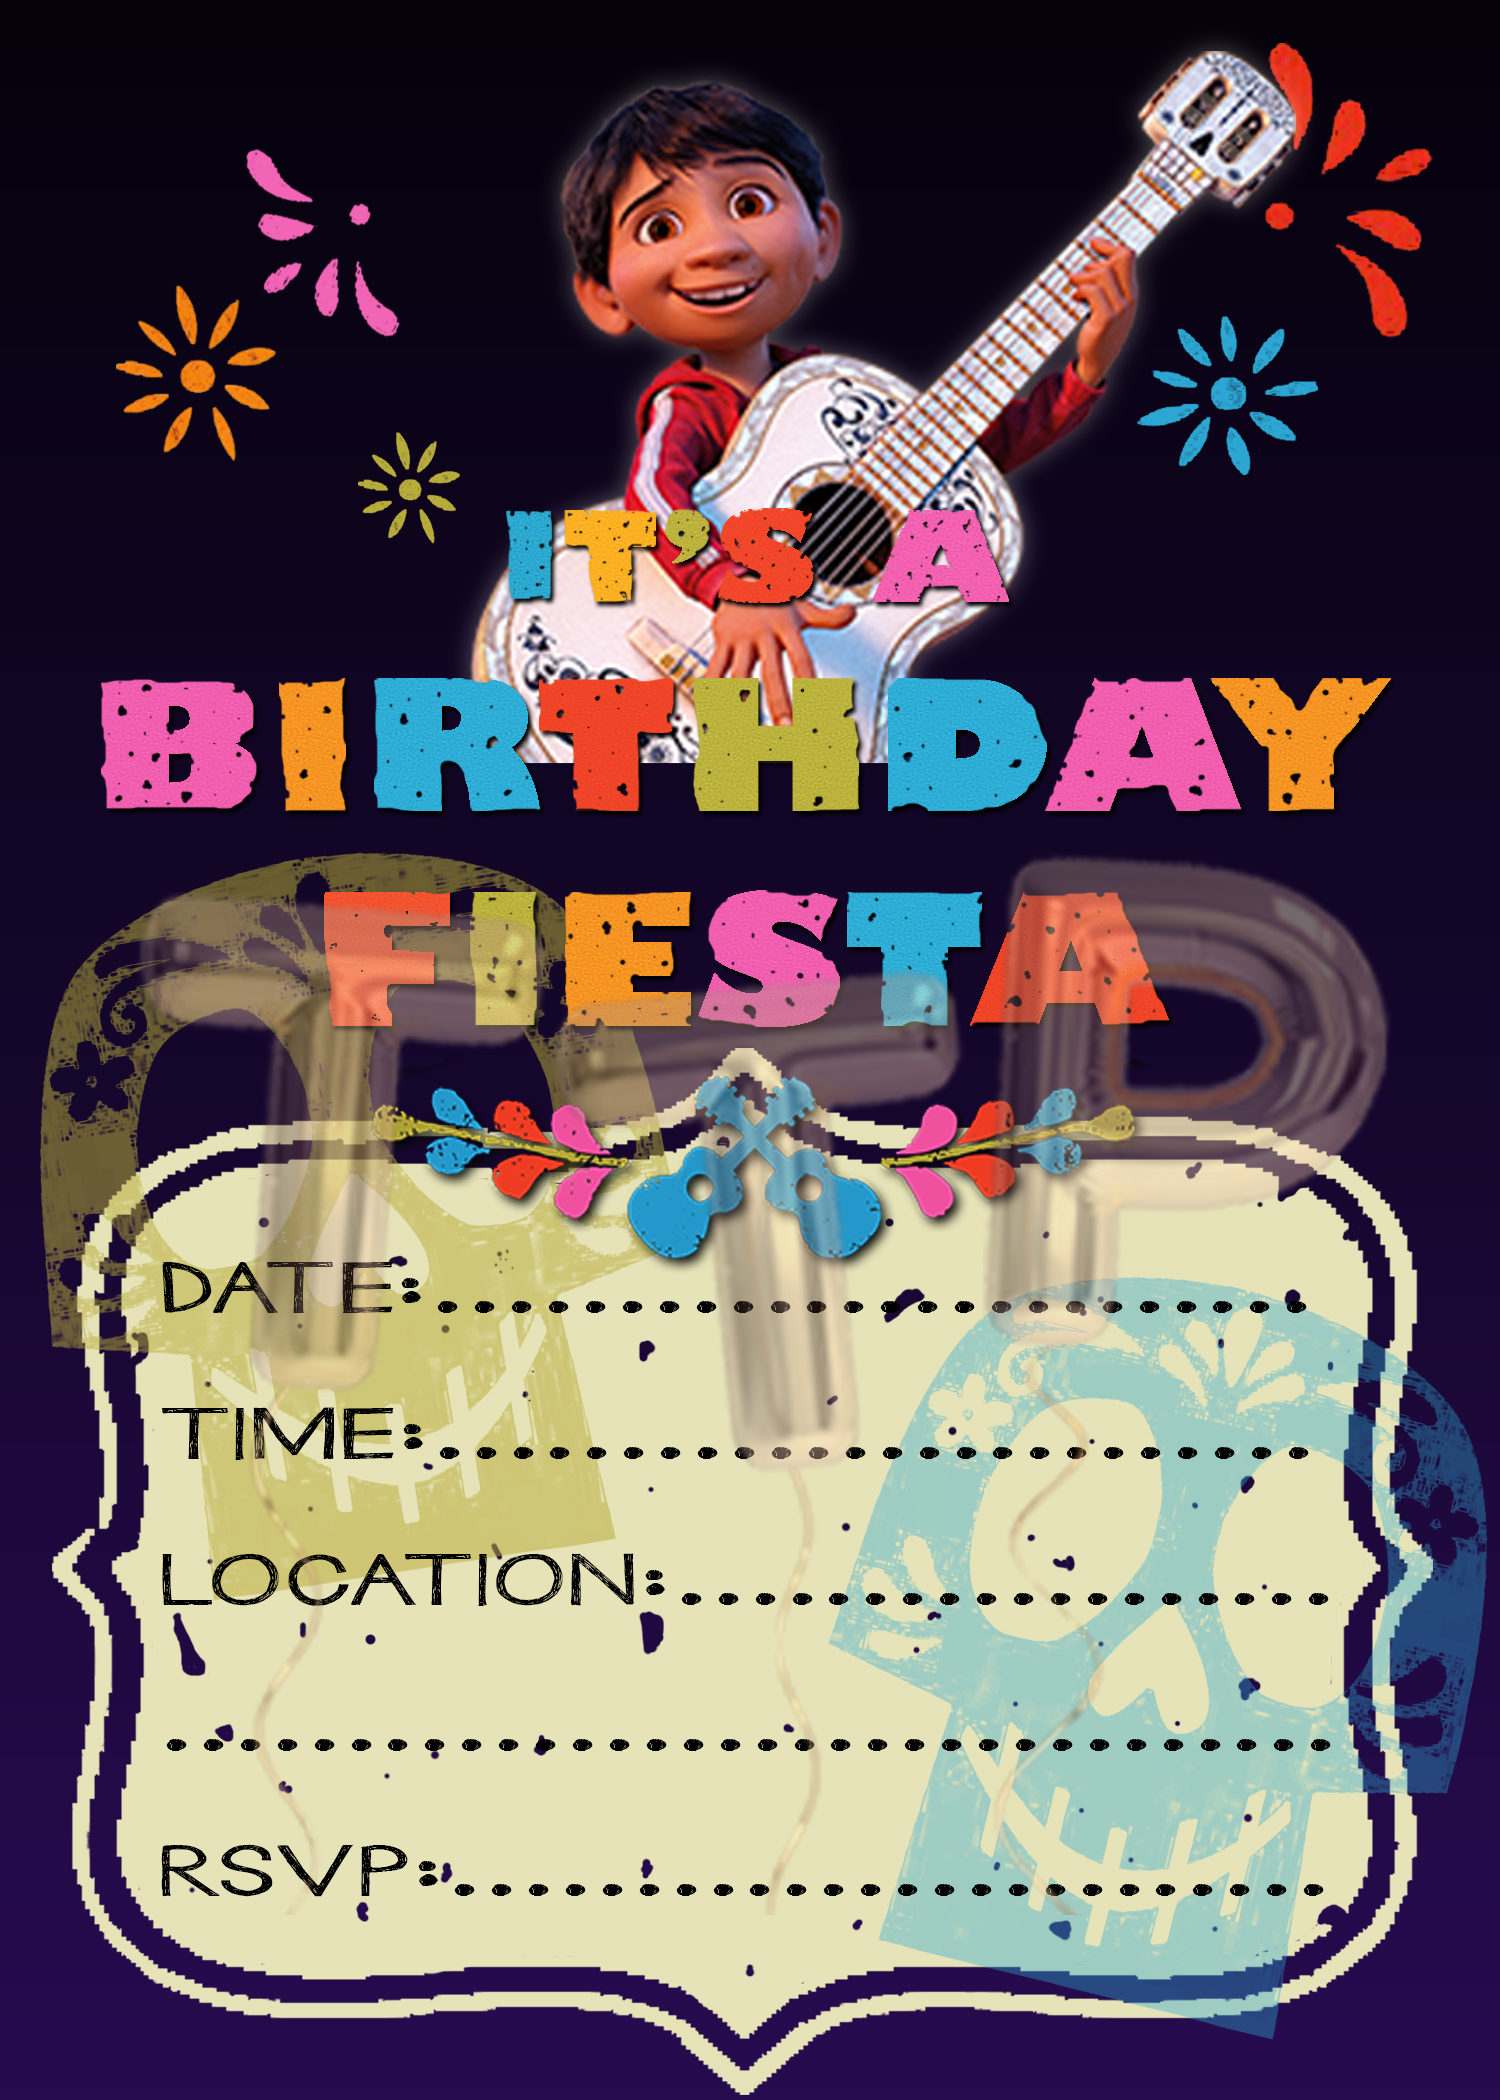 Party Invitations Party Invite Template Birthday Party Invitation Templates Diy Birthday Invitations